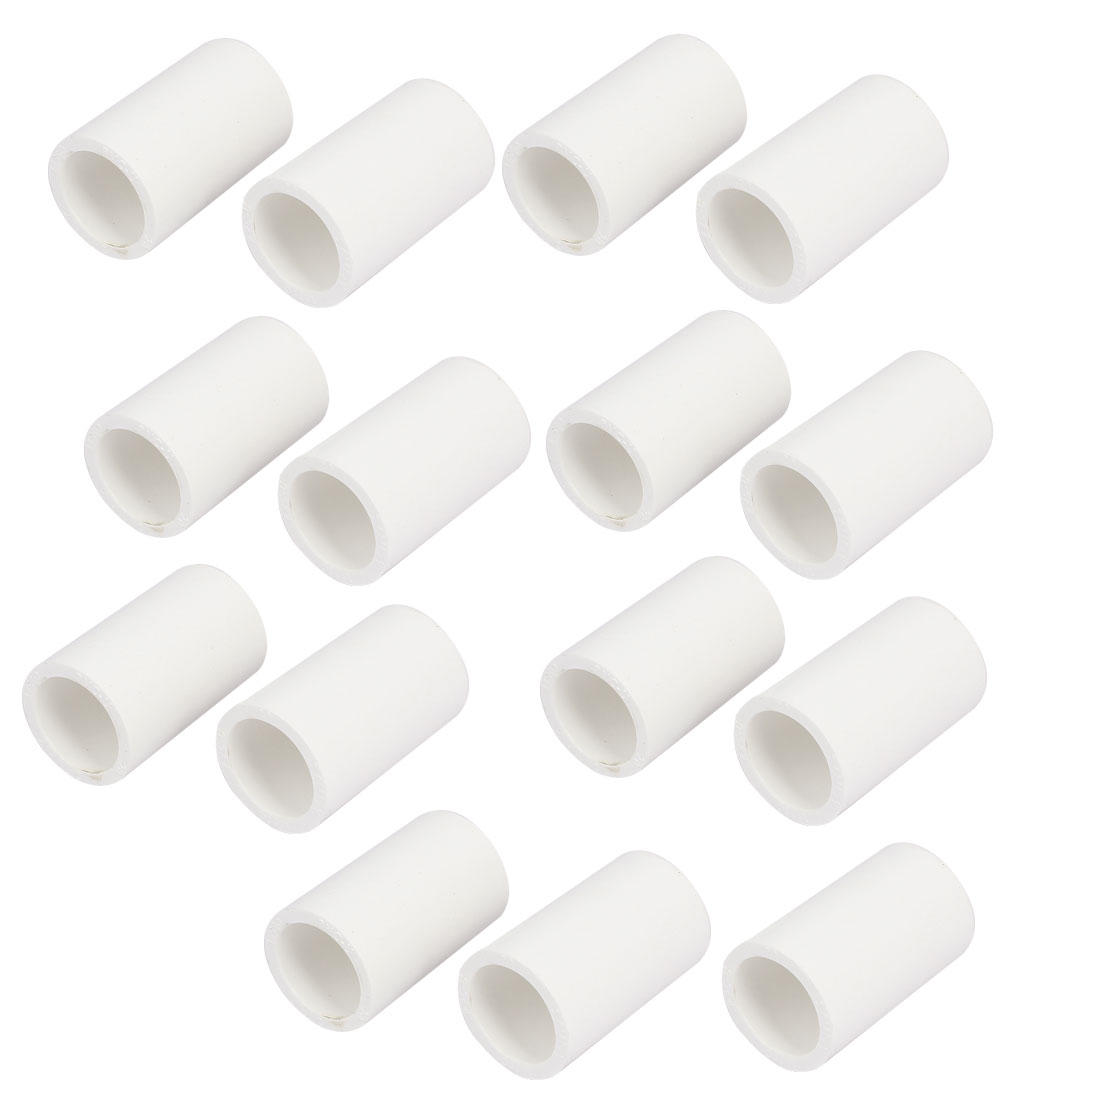 20mm Inner Diameter Straight PVC Pipe Connectors Fittings White 15pcs